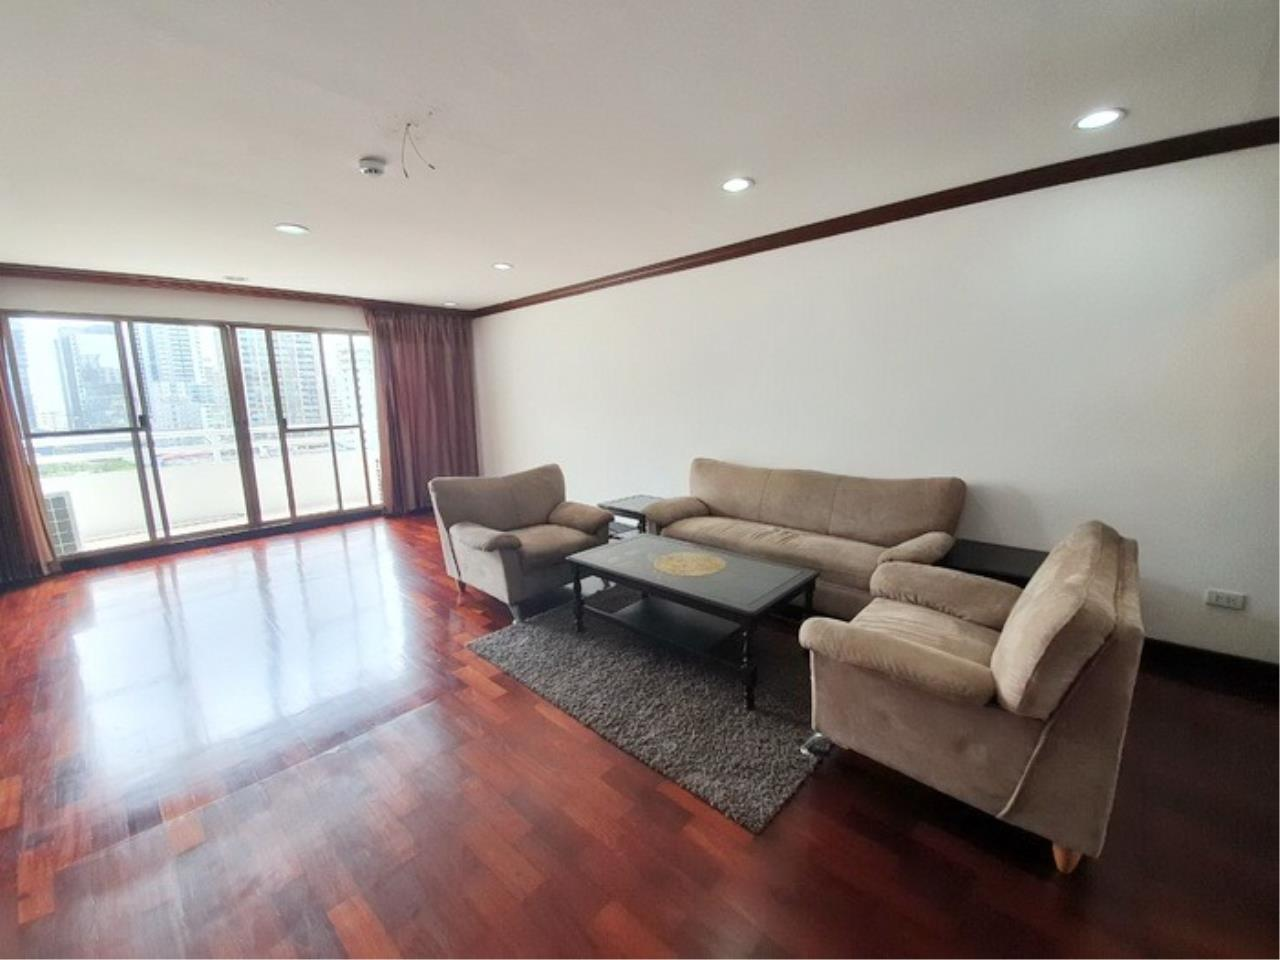 Bestbkkcondos Agency's regent on the park 1 - 250 Sq.M - for rent: 60000 THB - 3 bedrooms,3 bathrooms 4